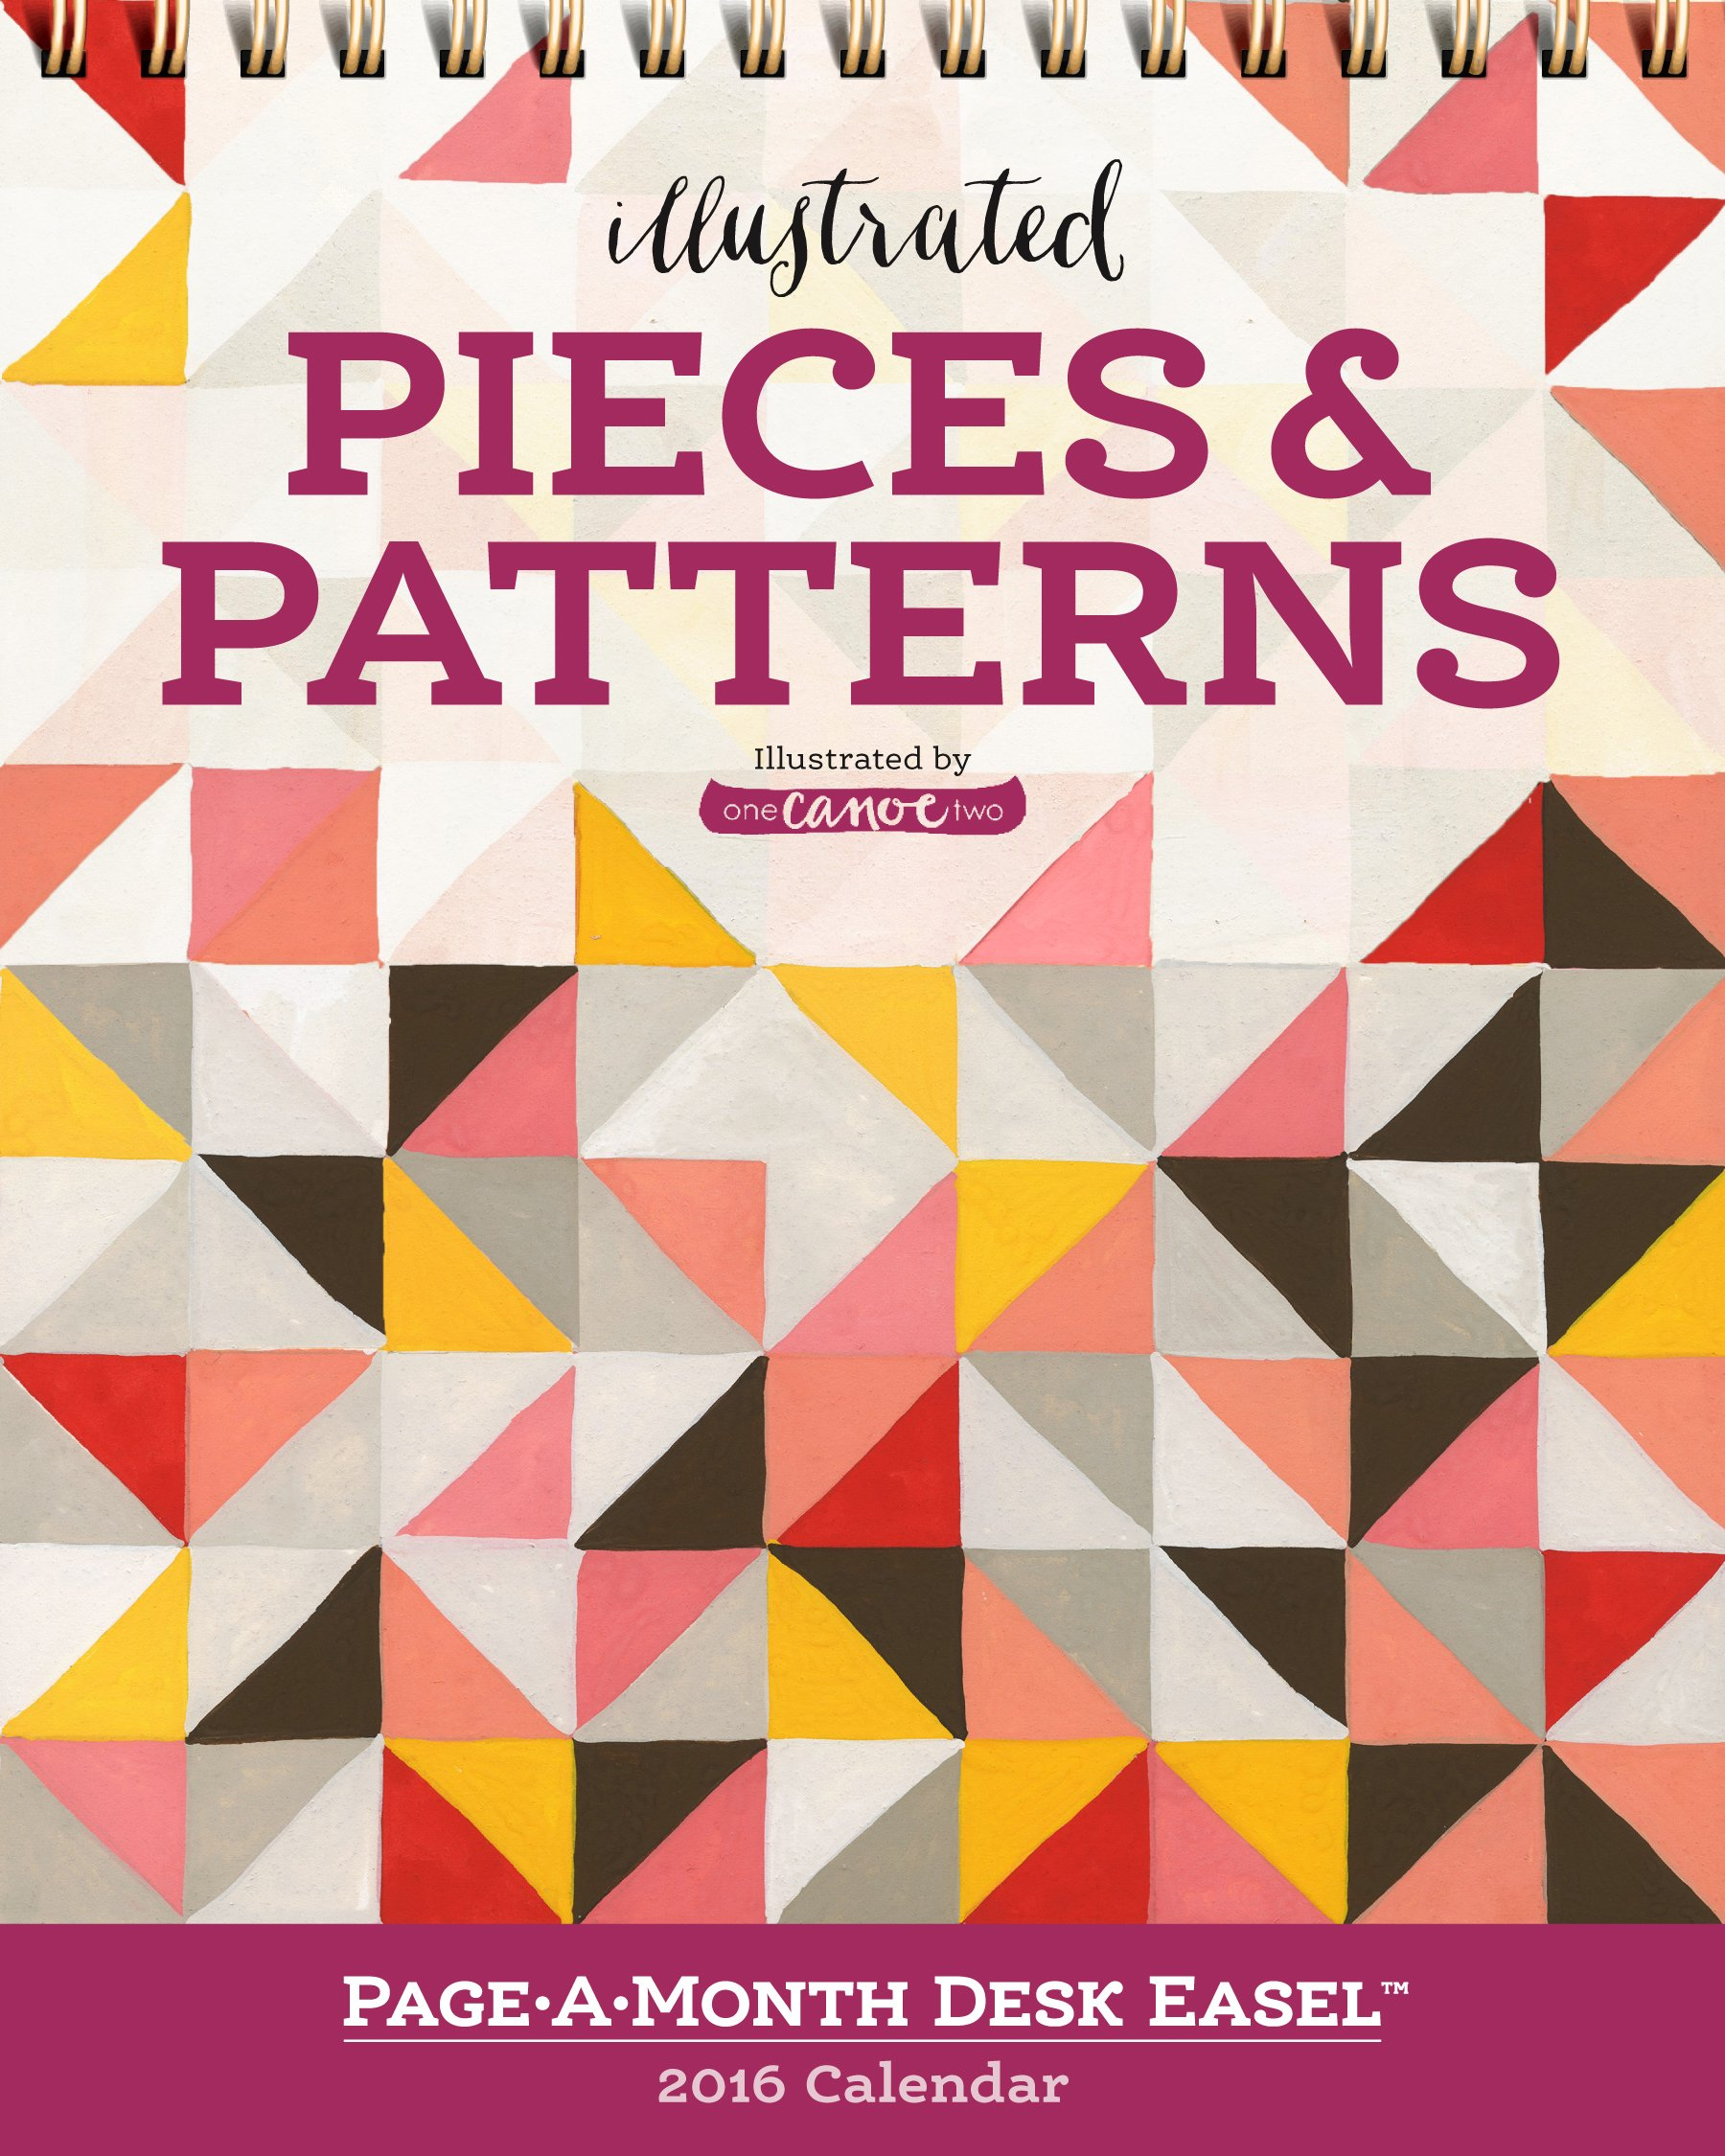 illustrated pieces patterns page a month desk easel calendar 2016